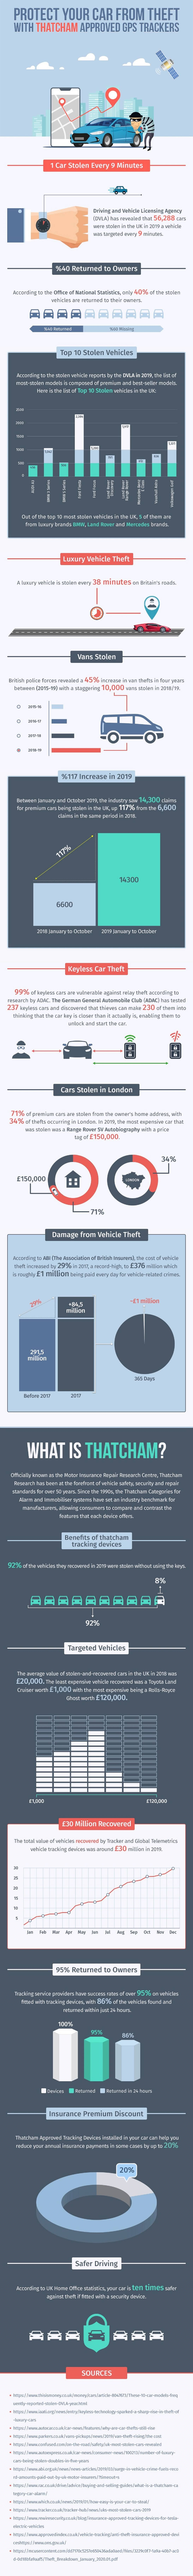 uk-vehicle-theft-recovery-statistics-with-thatcham-gps-trackers-infographic